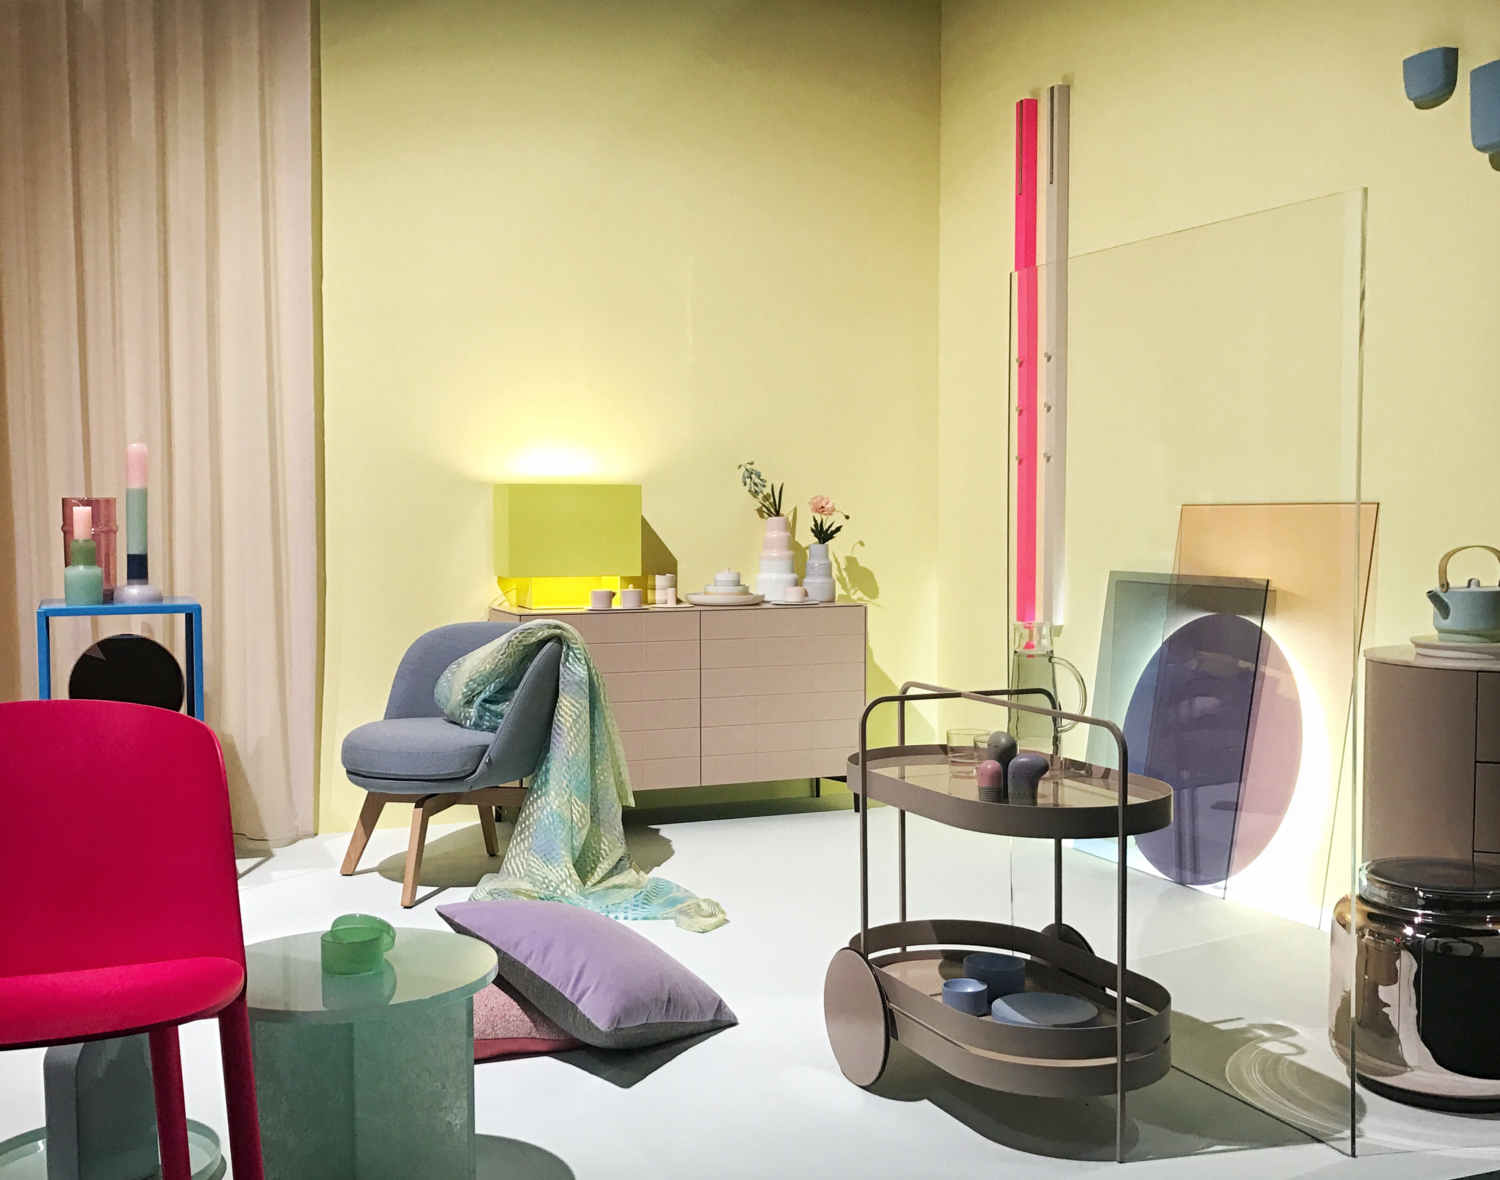 INTERIOR TRENDS Home interiors Now according to immcologne 2019